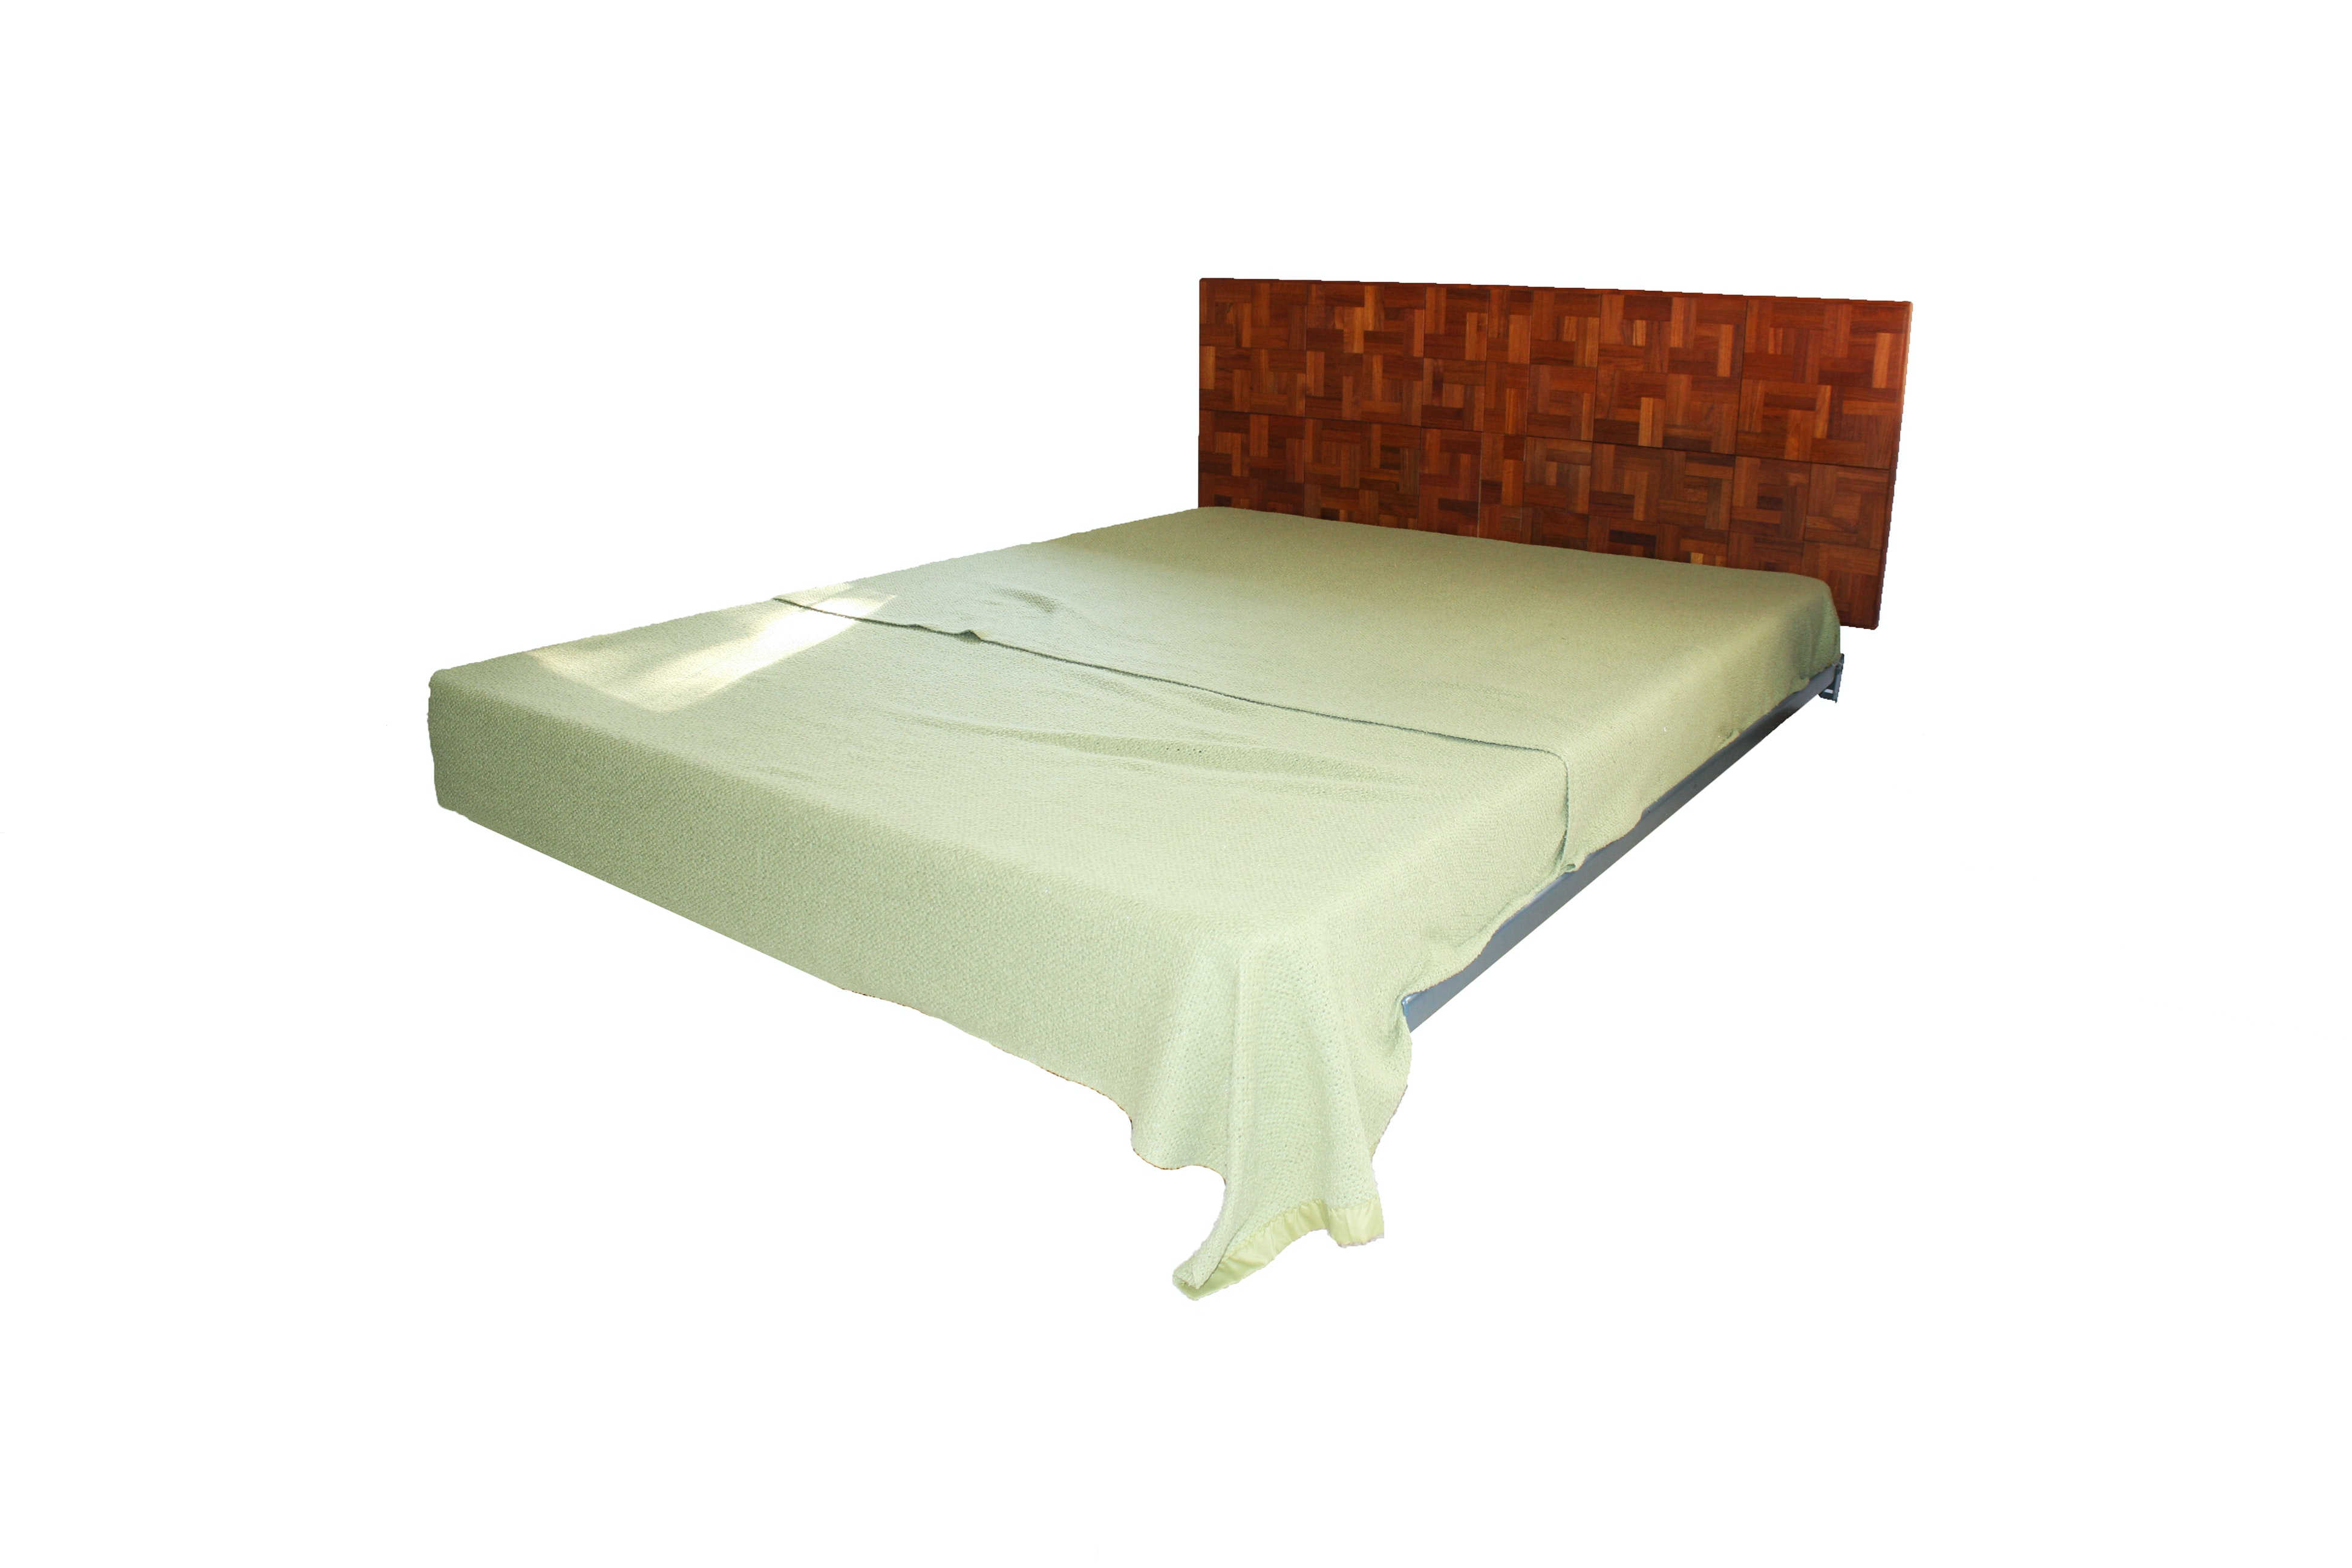 Vintage Queen-Size Parquet Headboard and Bed Frame